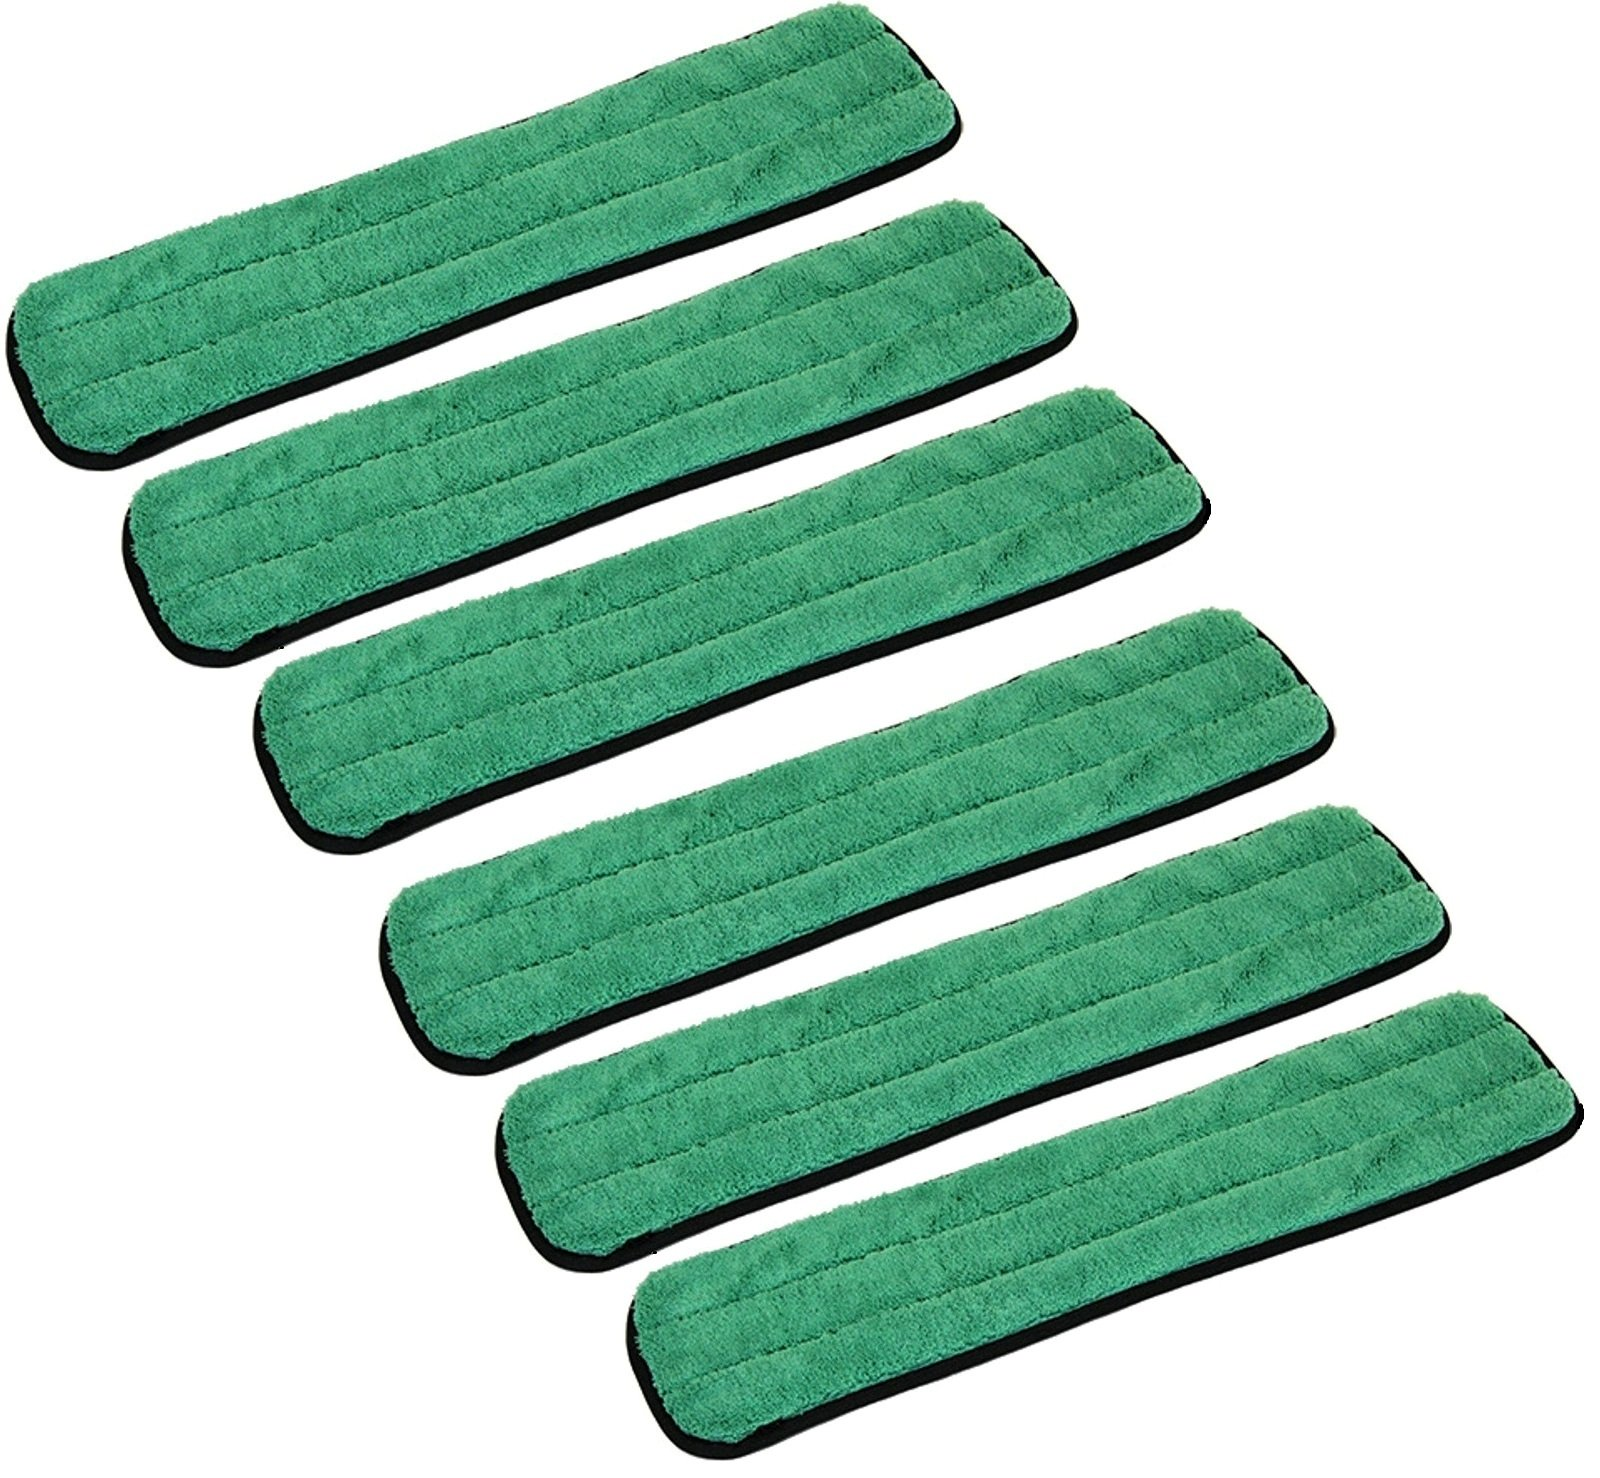 6 Pack of 36'' Industrial and Commercial Microfiber Dry Dusting Mop Pad for Flat Frames By Real Clean by Real Clean (Image #1)